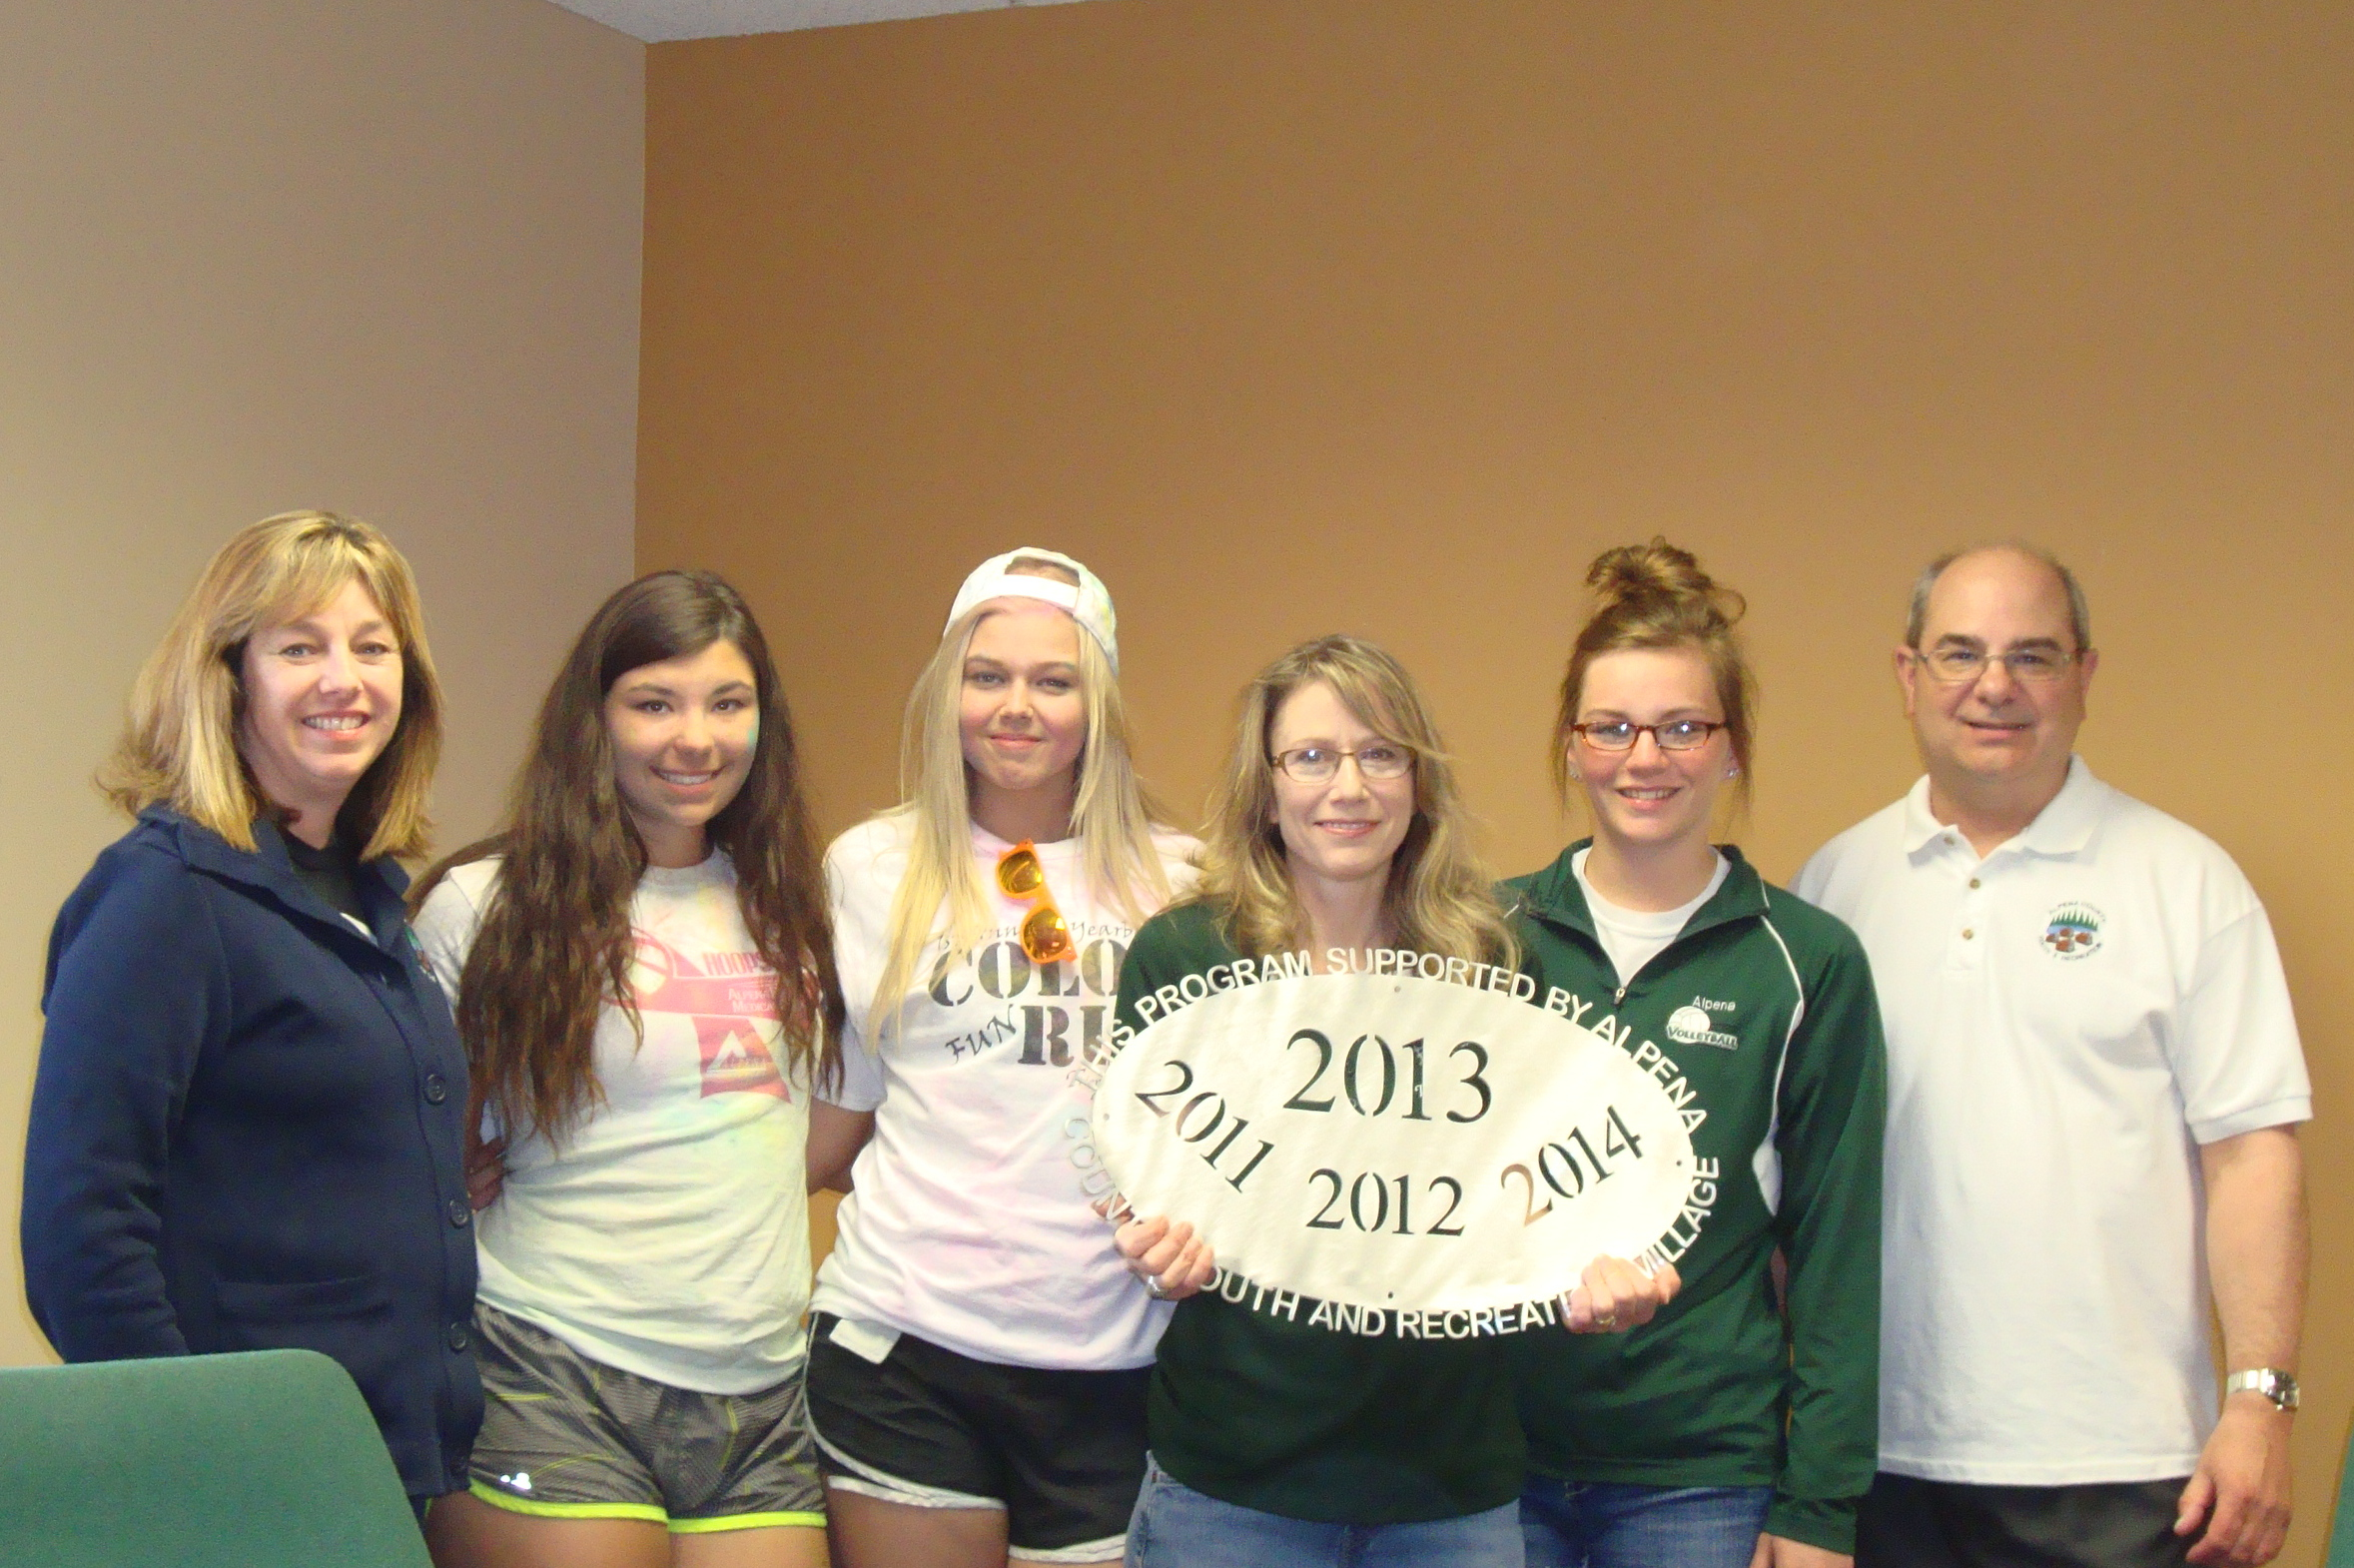 Alpena Public Schools - Volleyball Club $7,500 Operating Support to reduce the cost to players